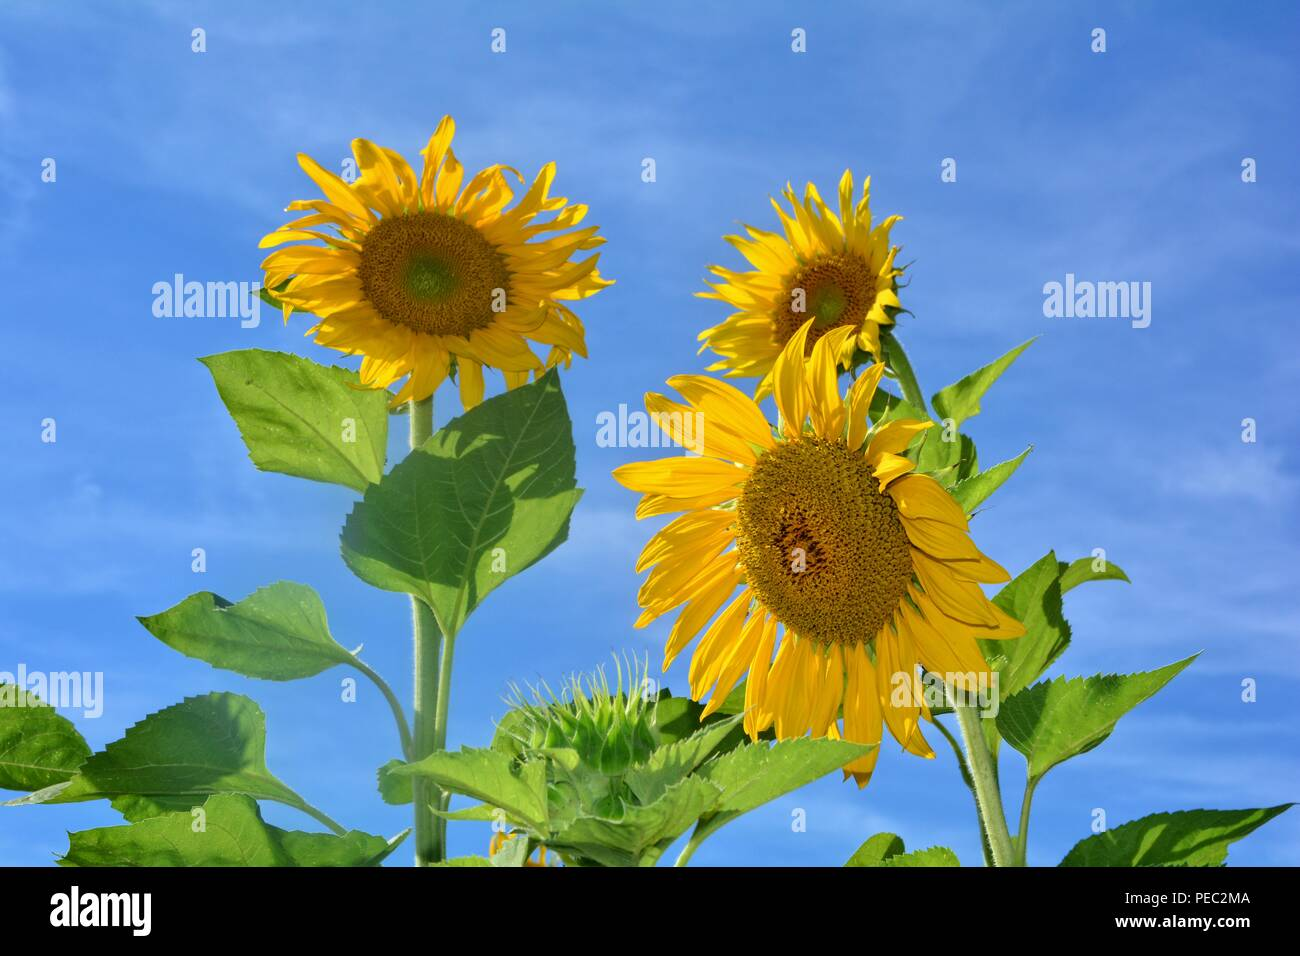 Big sunflowers with blue sky - Stock Image